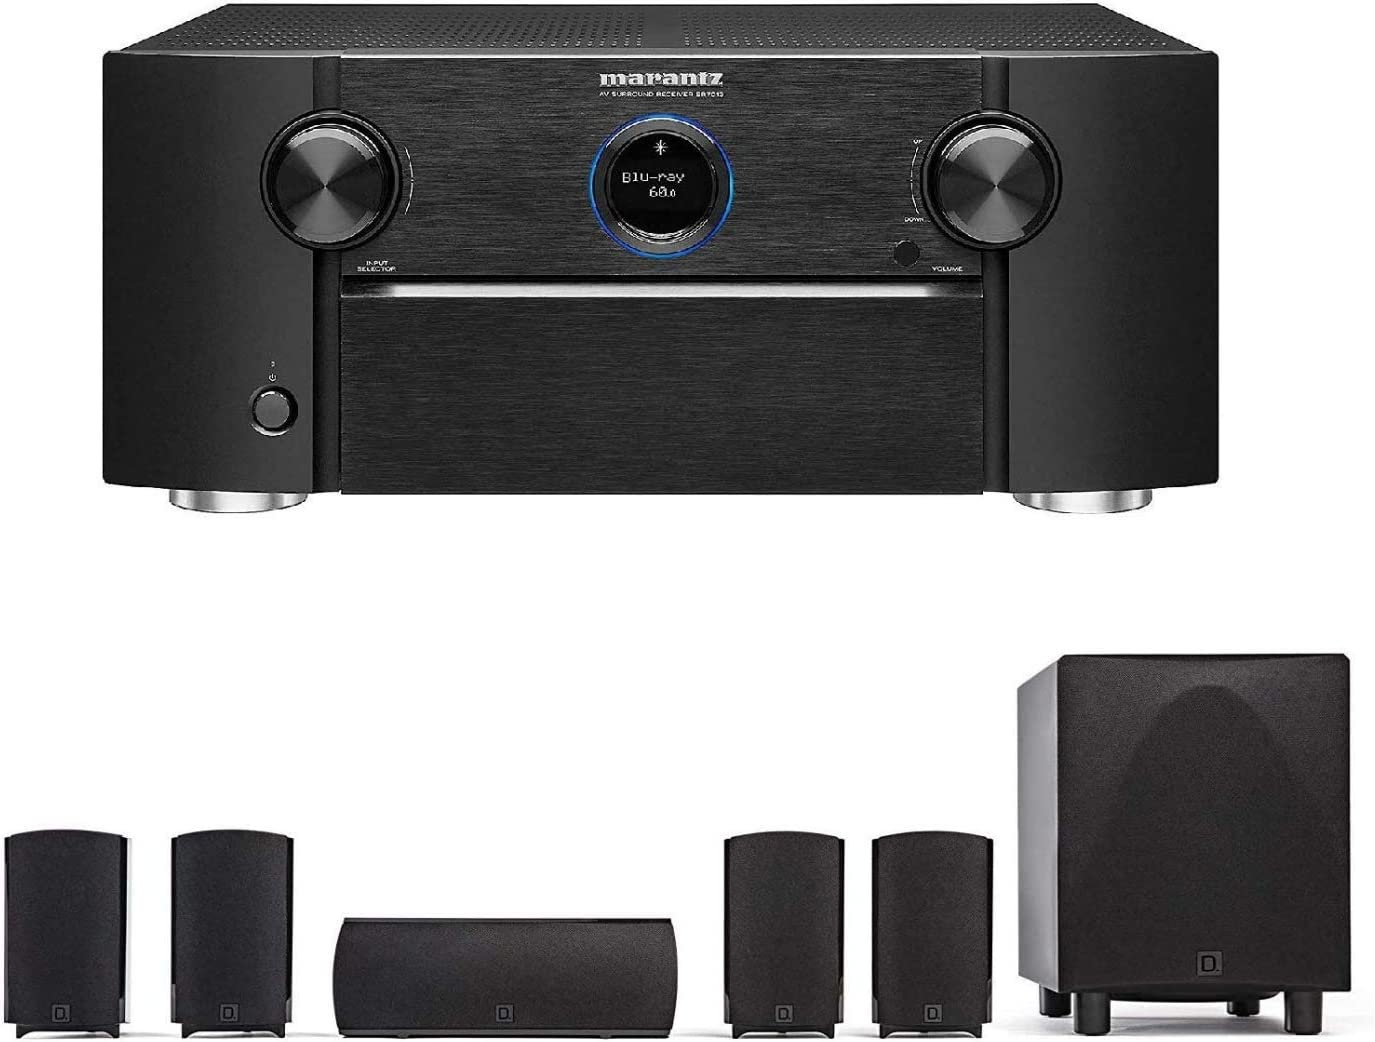 Marantz SR7013 9.2 Channel Home Theater Receiver Definitive Technology ProCinema 6D - 5.1 Channel Home Theater Speakers Package|Powered Subwoofer, Center Channel & 4 Speakers| Bundle